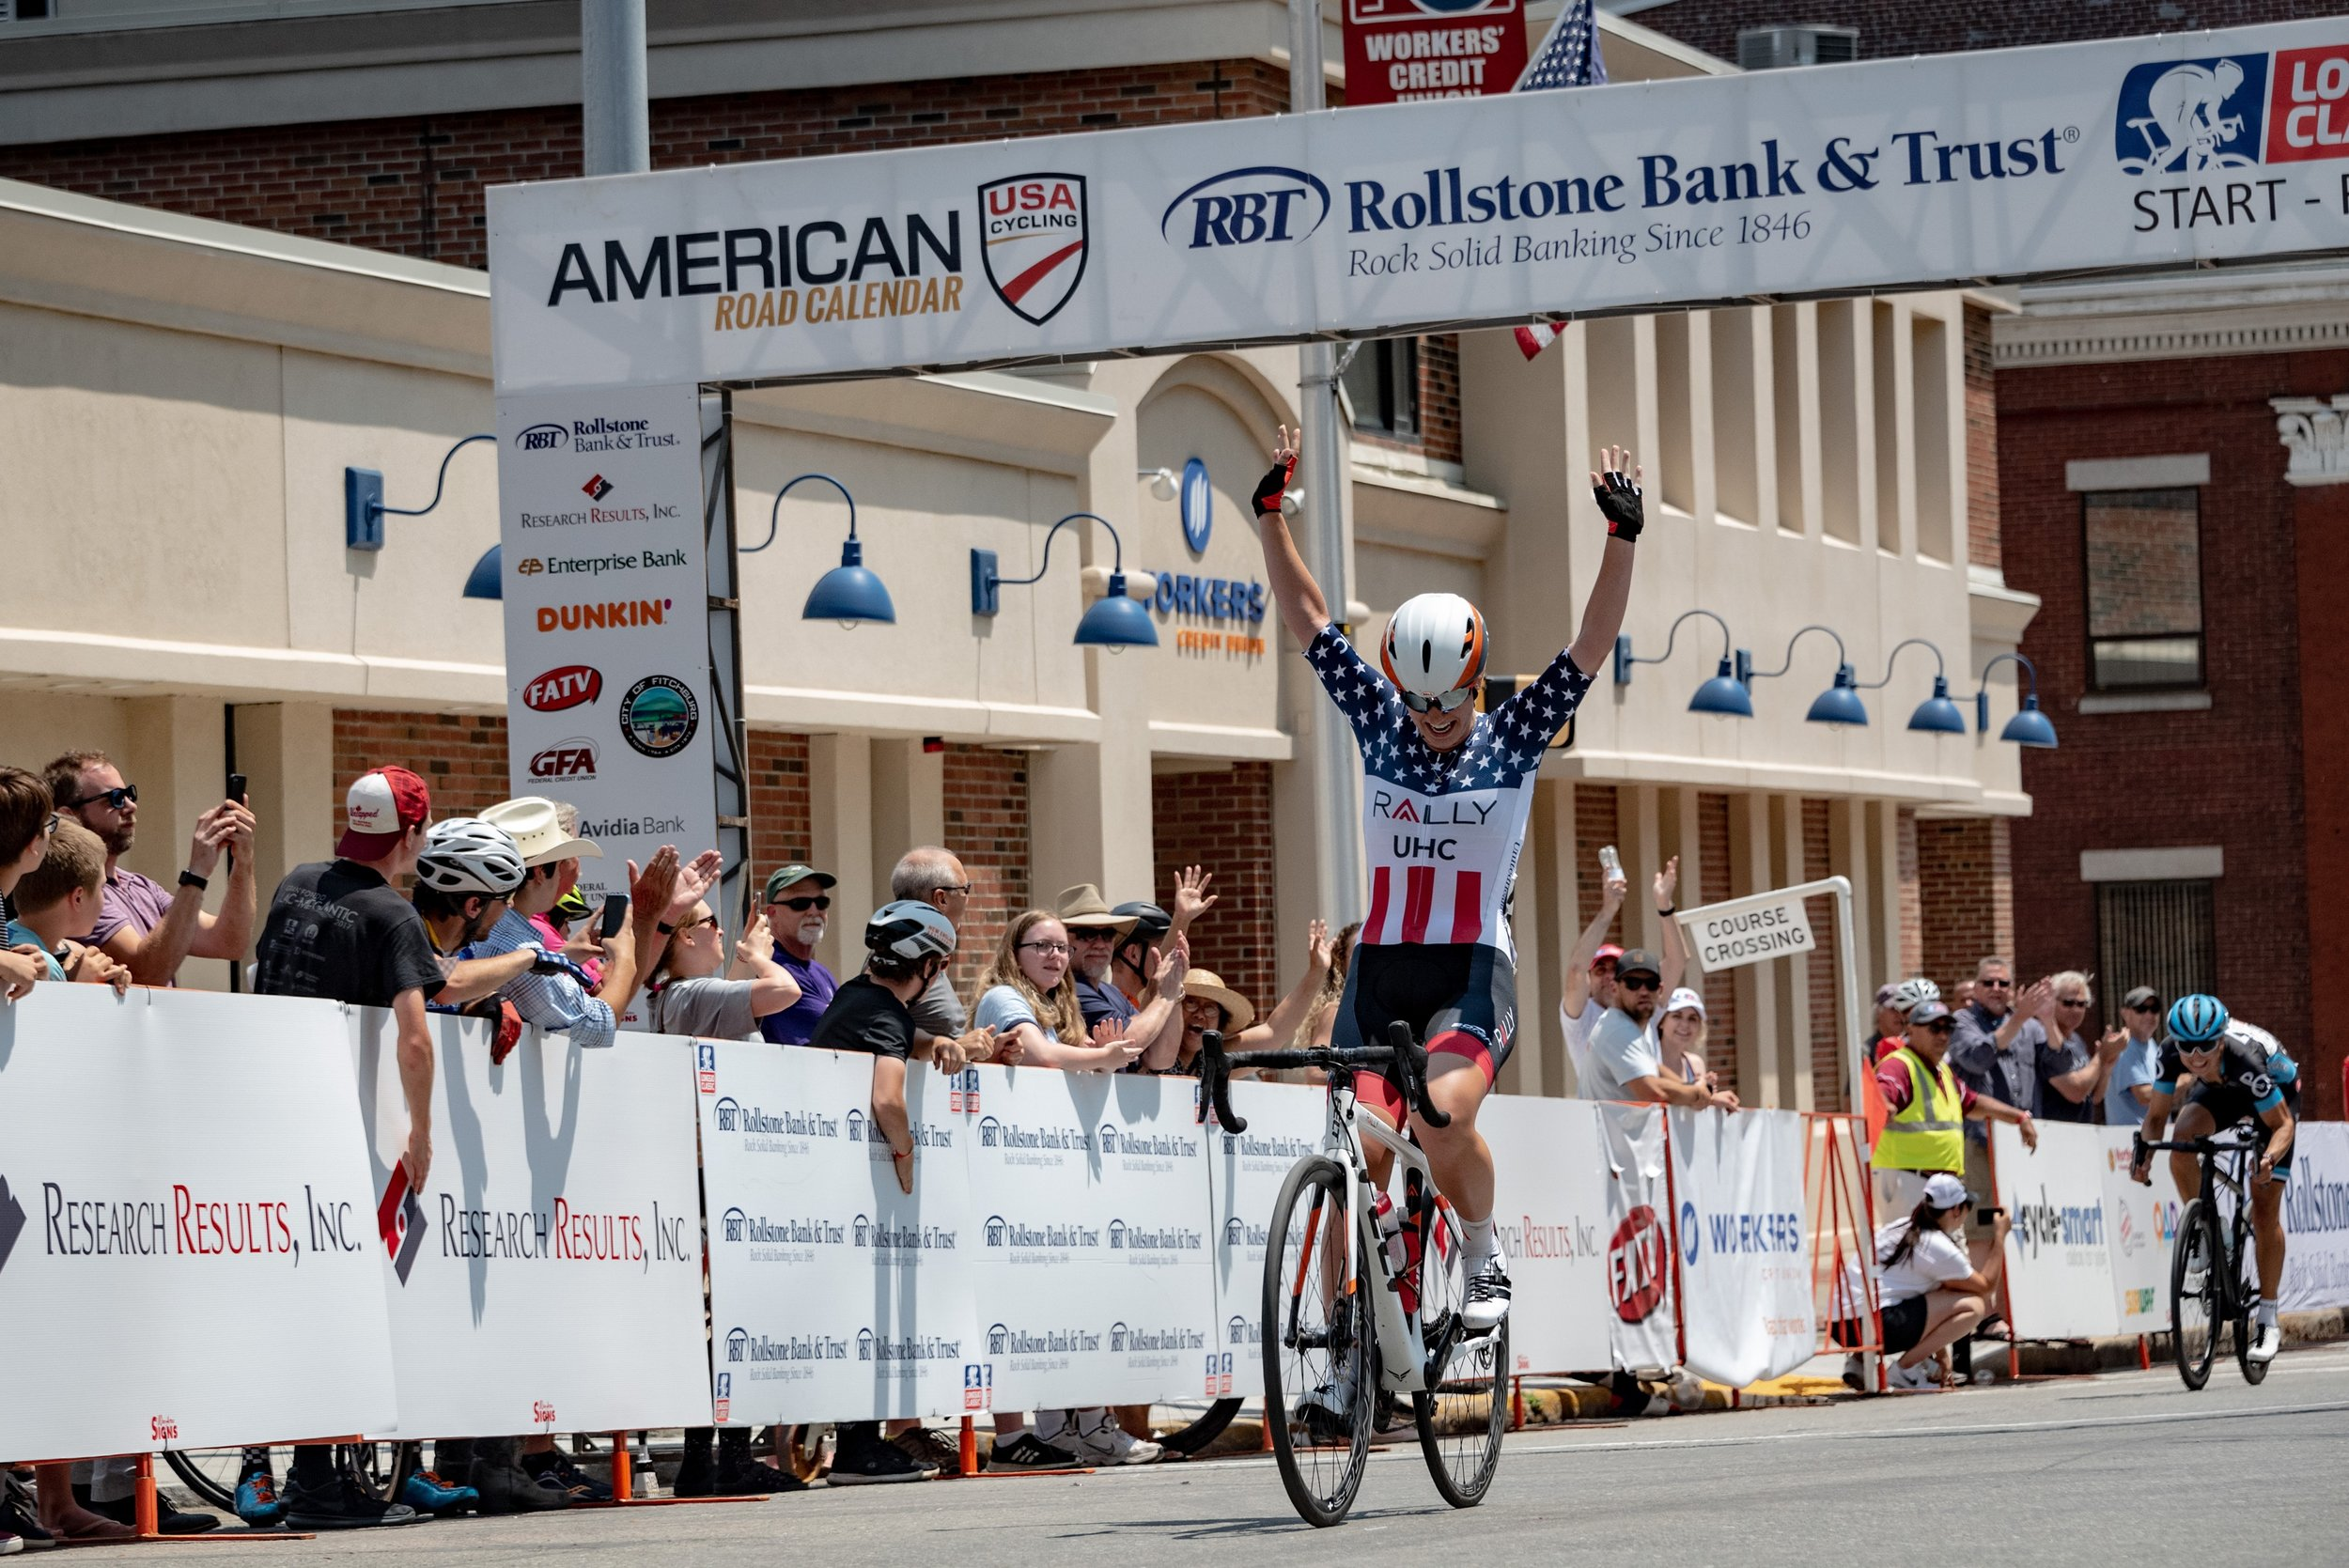 White takes the win in Fitchburg. Photo: Katie Busick Photography